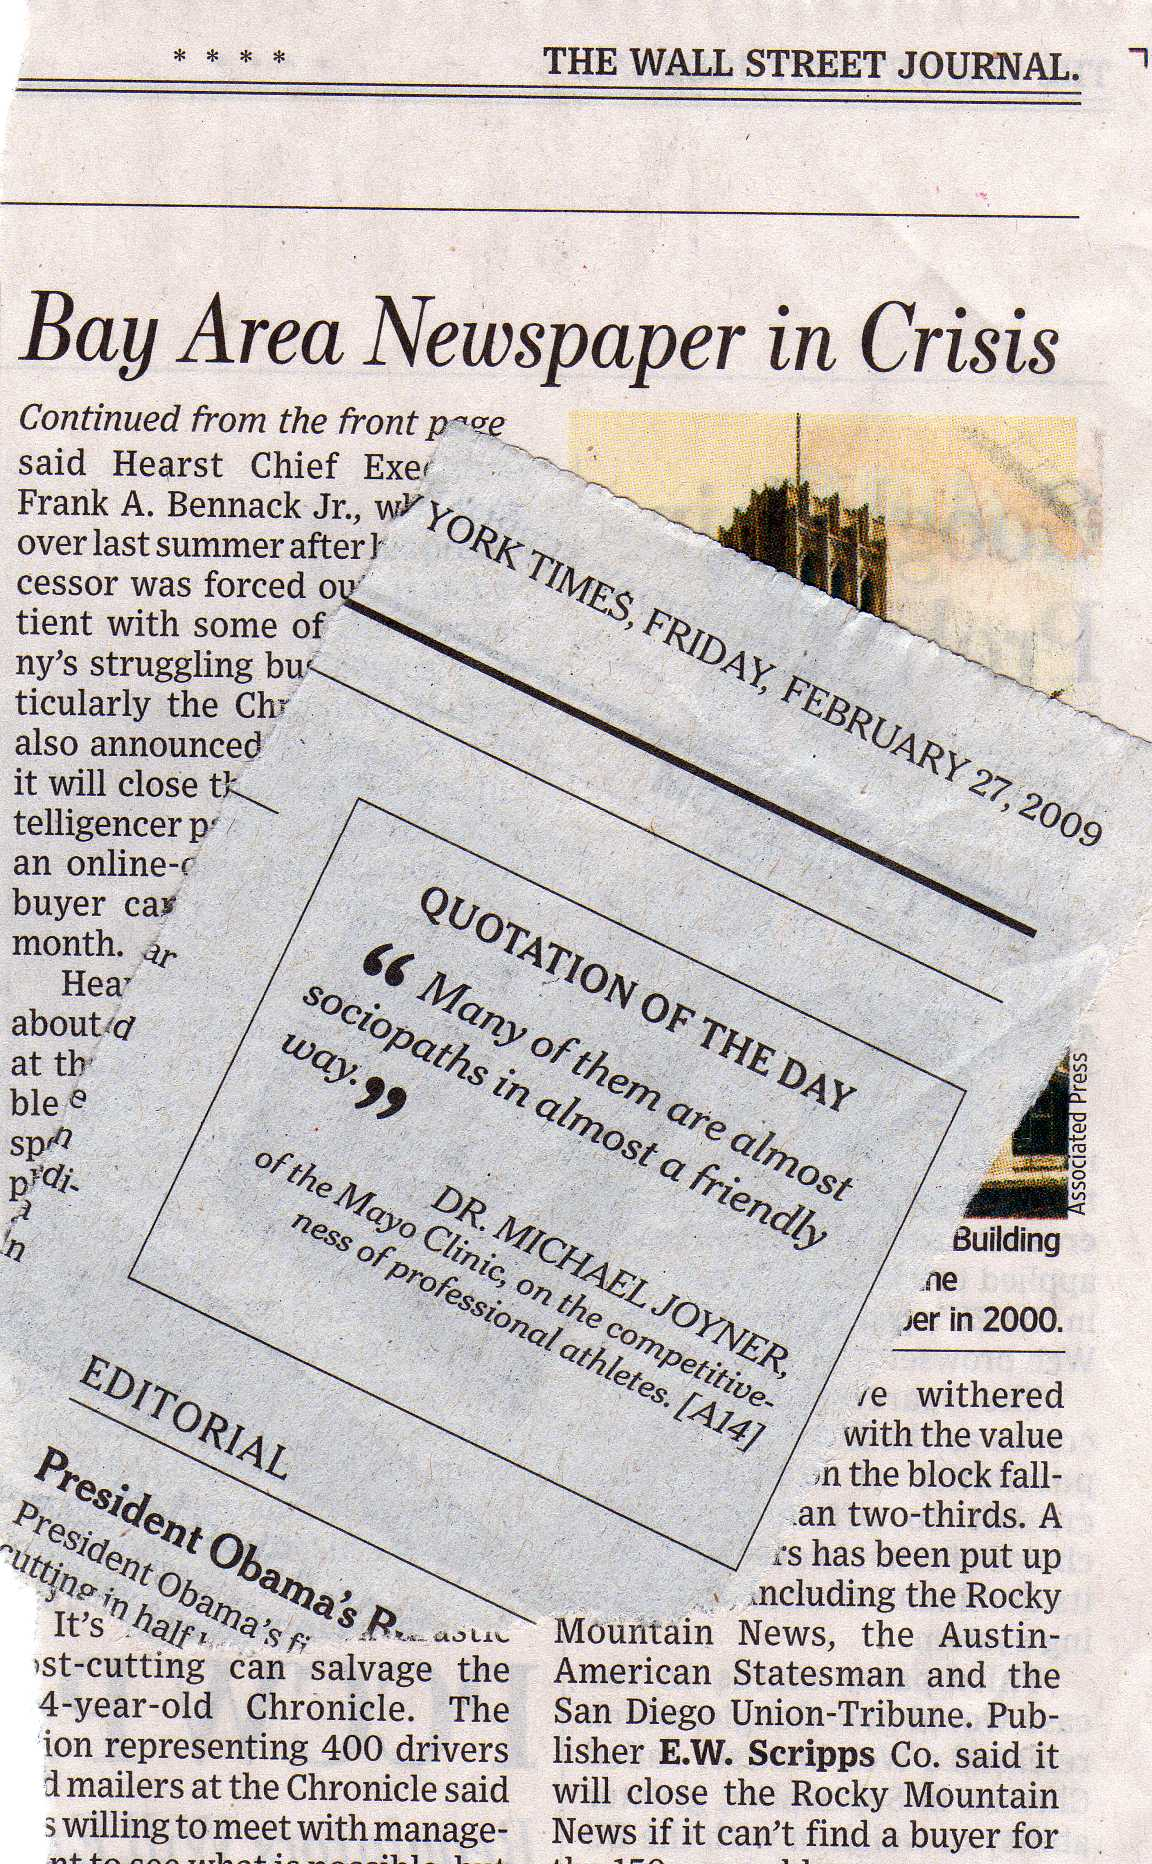 Hearst newspaper and sports quote